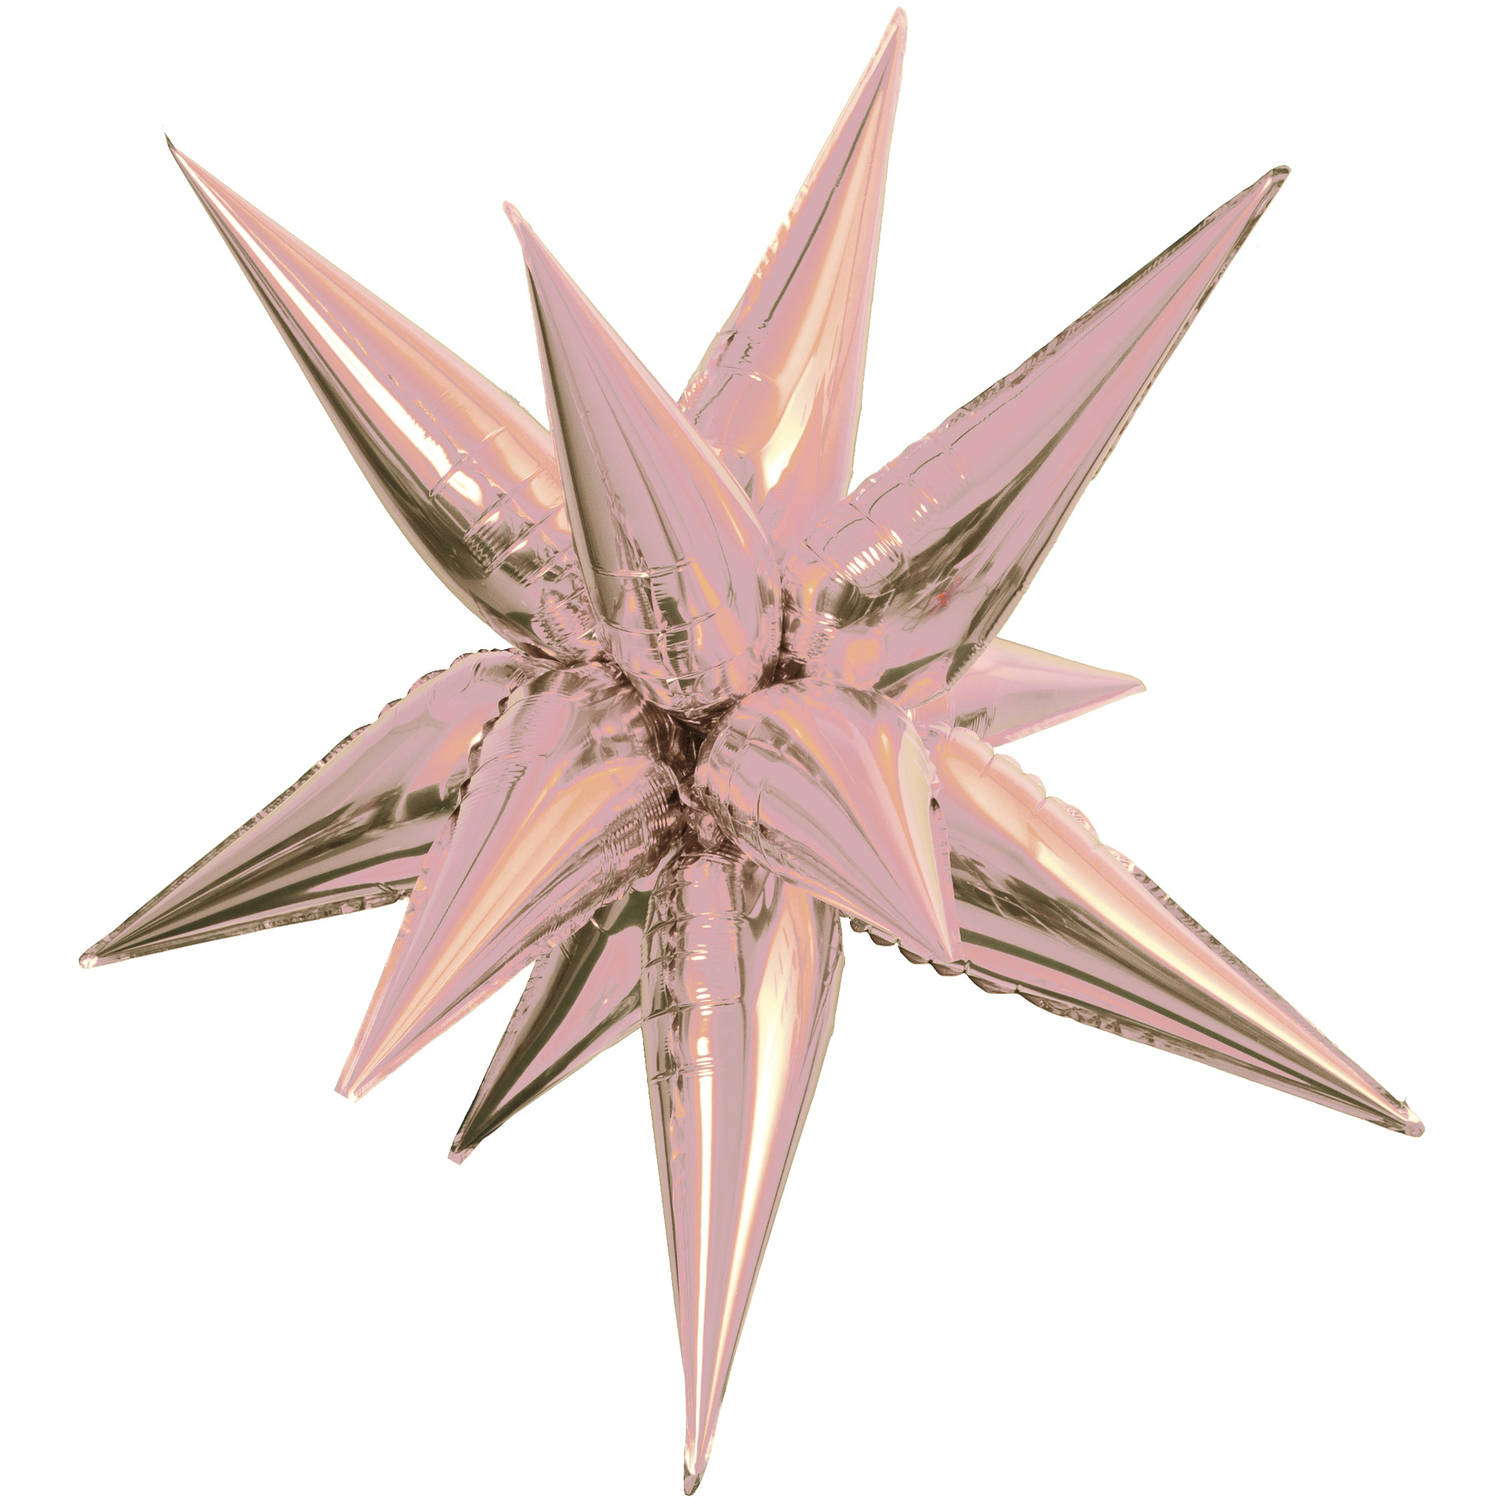 Jumbo Foil 12 Point Star Balloon, 40 in, Rose Gold, 1ct